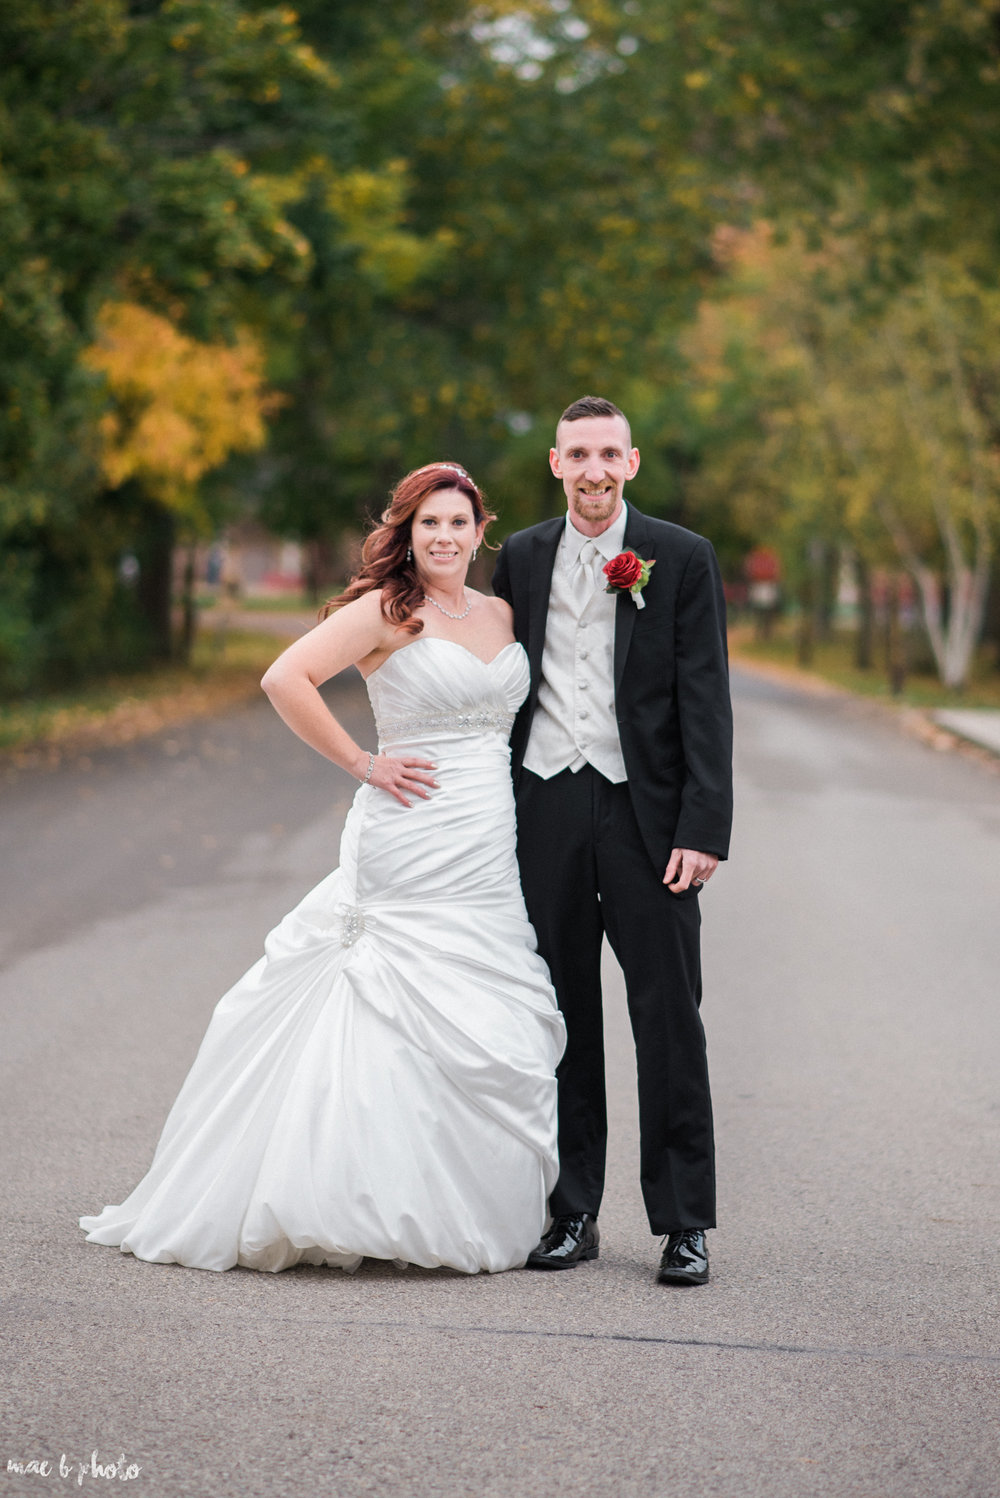 tracey and aaron's personal fall wedding at tiffany's banquet center in brookfield ohio-81.jpg